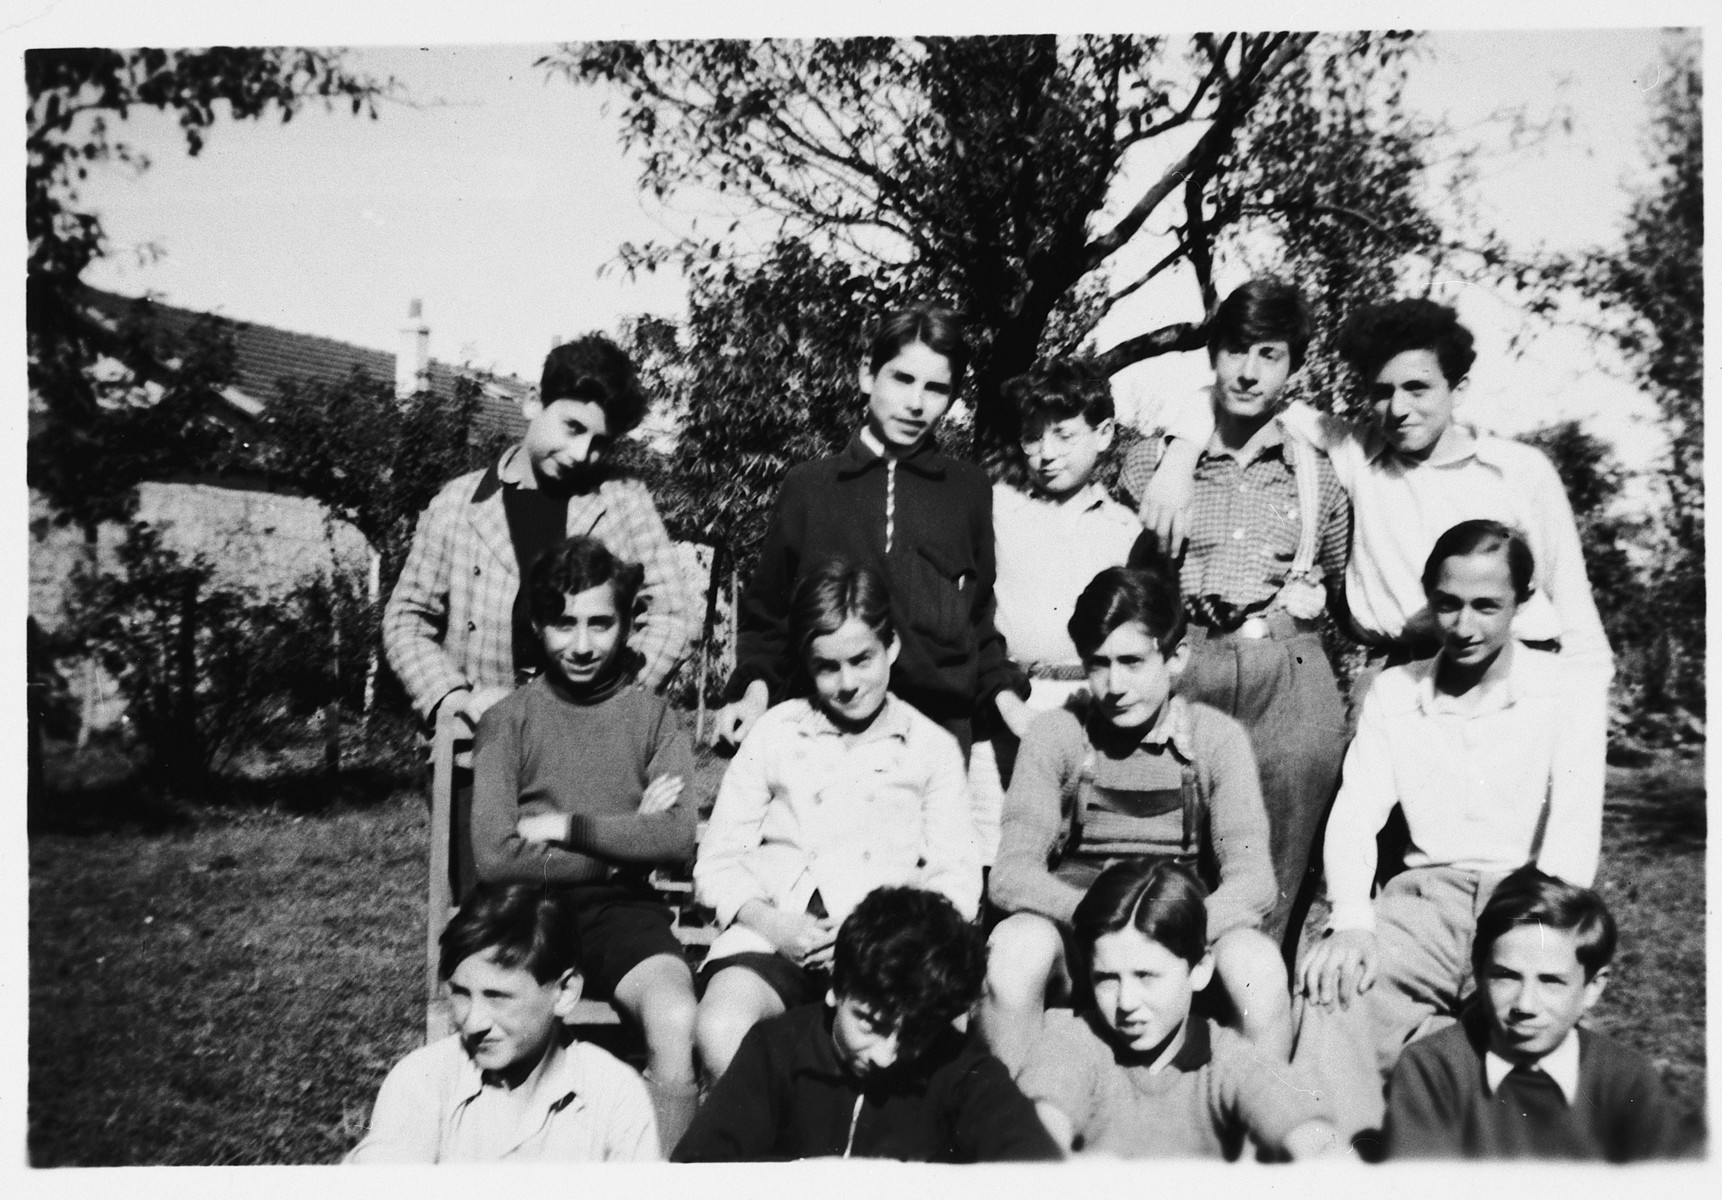 Group portrait of Jewish refugee boys who came to France on a Kindertransport from Germany.  Pictured from left to right are: front row: A. Kaczinsky, E. Goldfarb, S. Lewy, G. Rosenzweig; middle row:  H. Mastbaum, W. Blumenreich, J. Alter and G. Blatt; top row: B. Warschauer, W. Herzig, E. Heysemann, C. Zimmermann and J. Kollender.